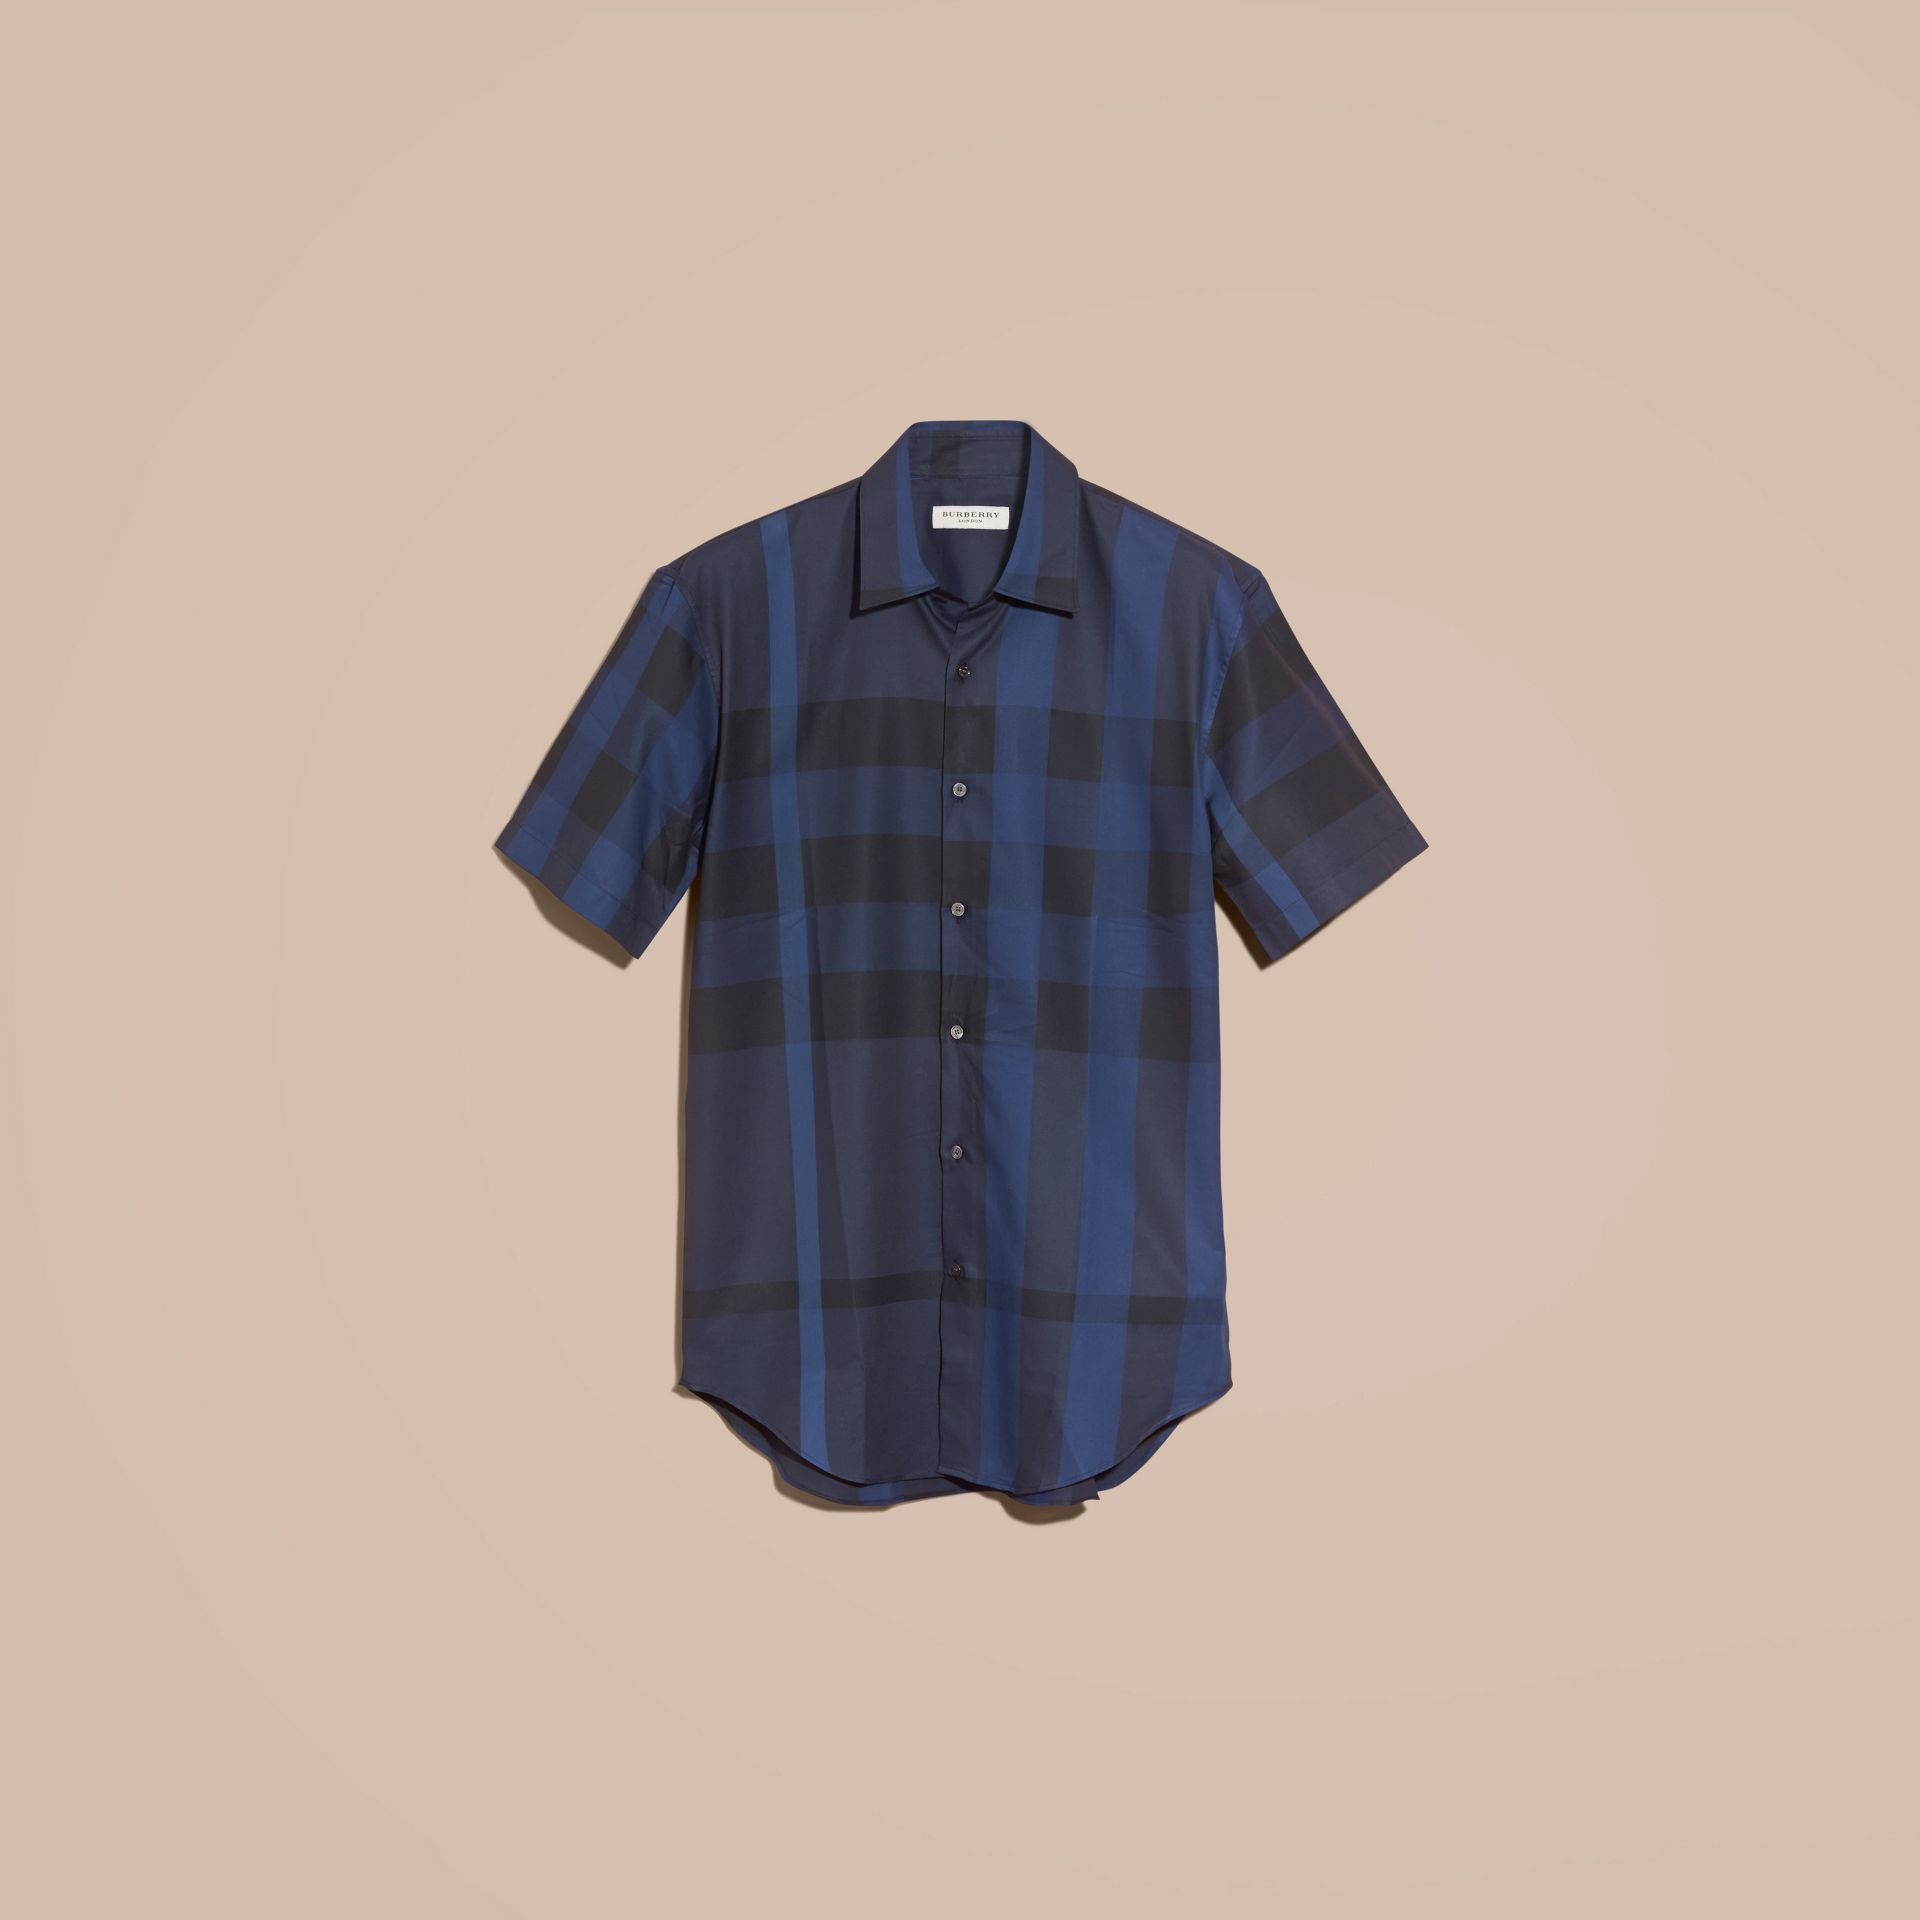 Navy Short-sleeved Check Cotton Shirt Navy - gallery image 4